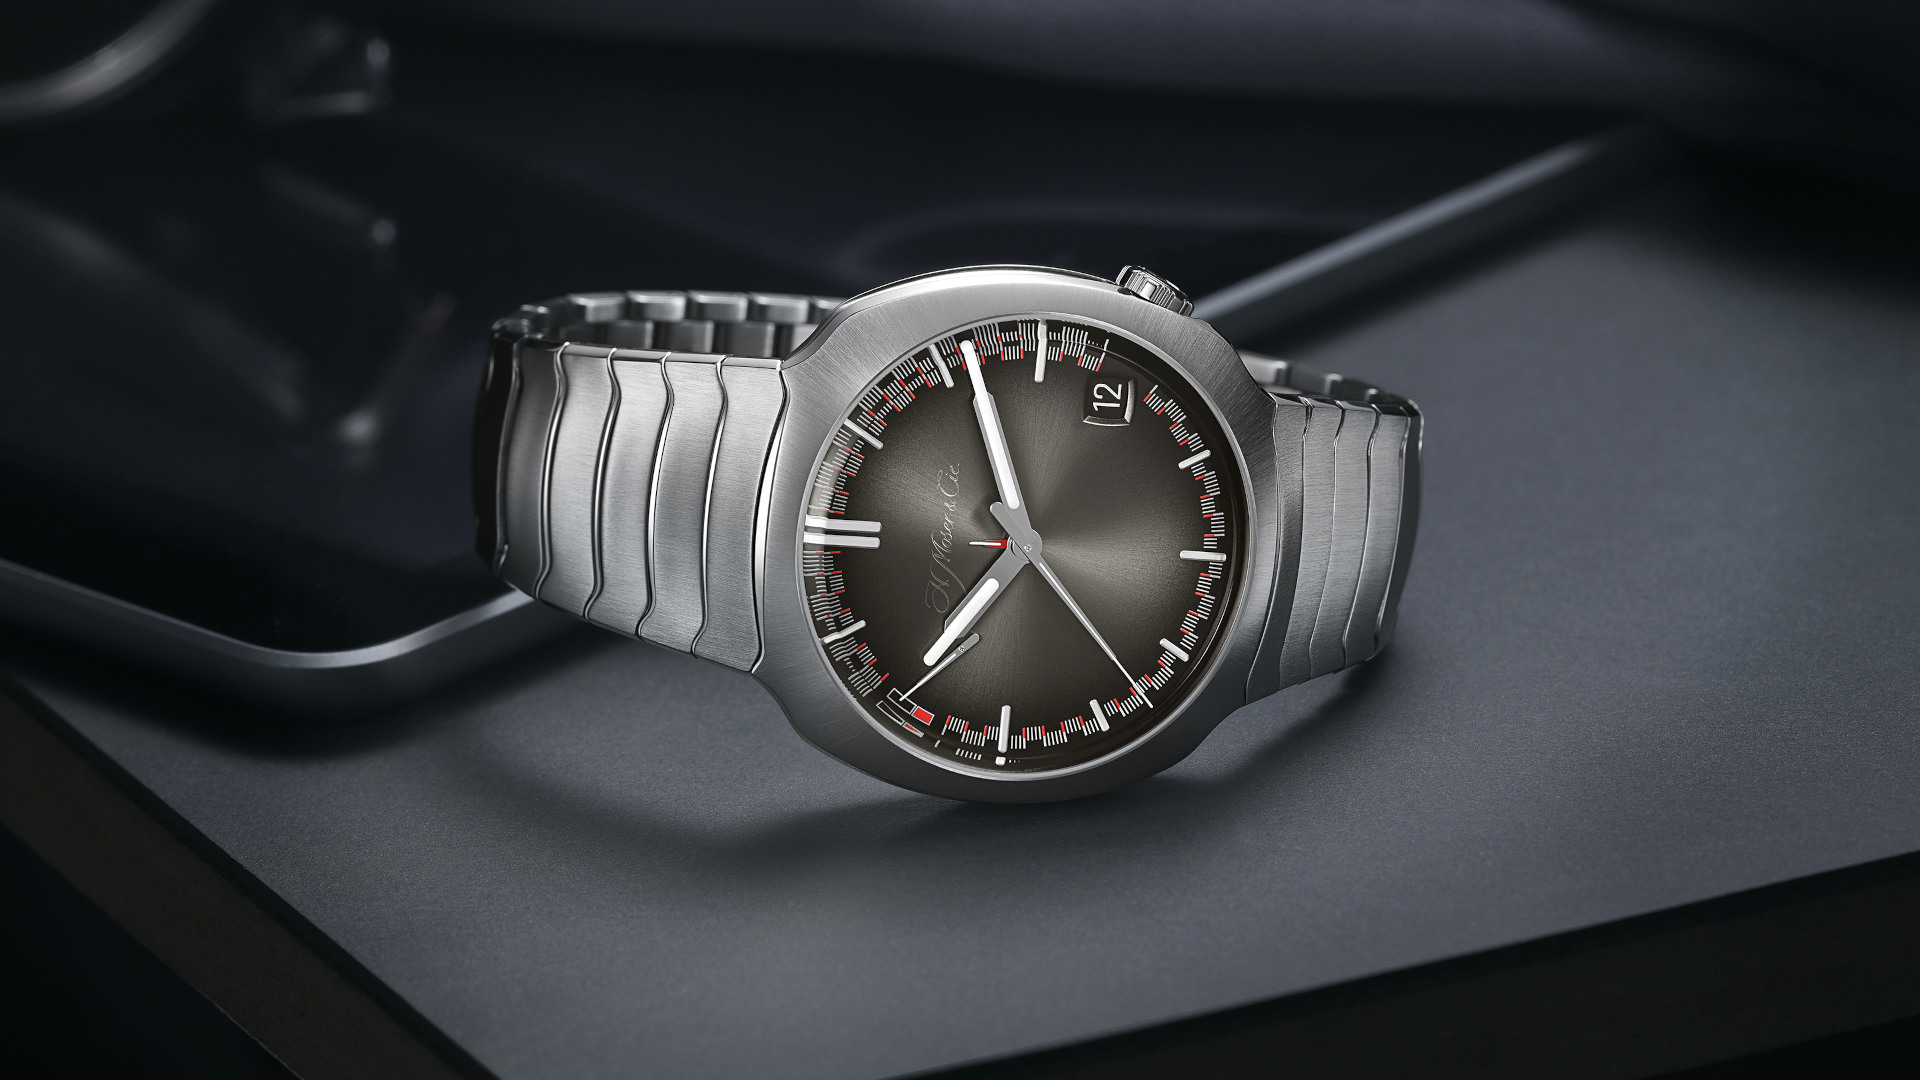 Simplicity is at the heart of the latest H. Moser & Cie Streamliner Perpetual Calendar